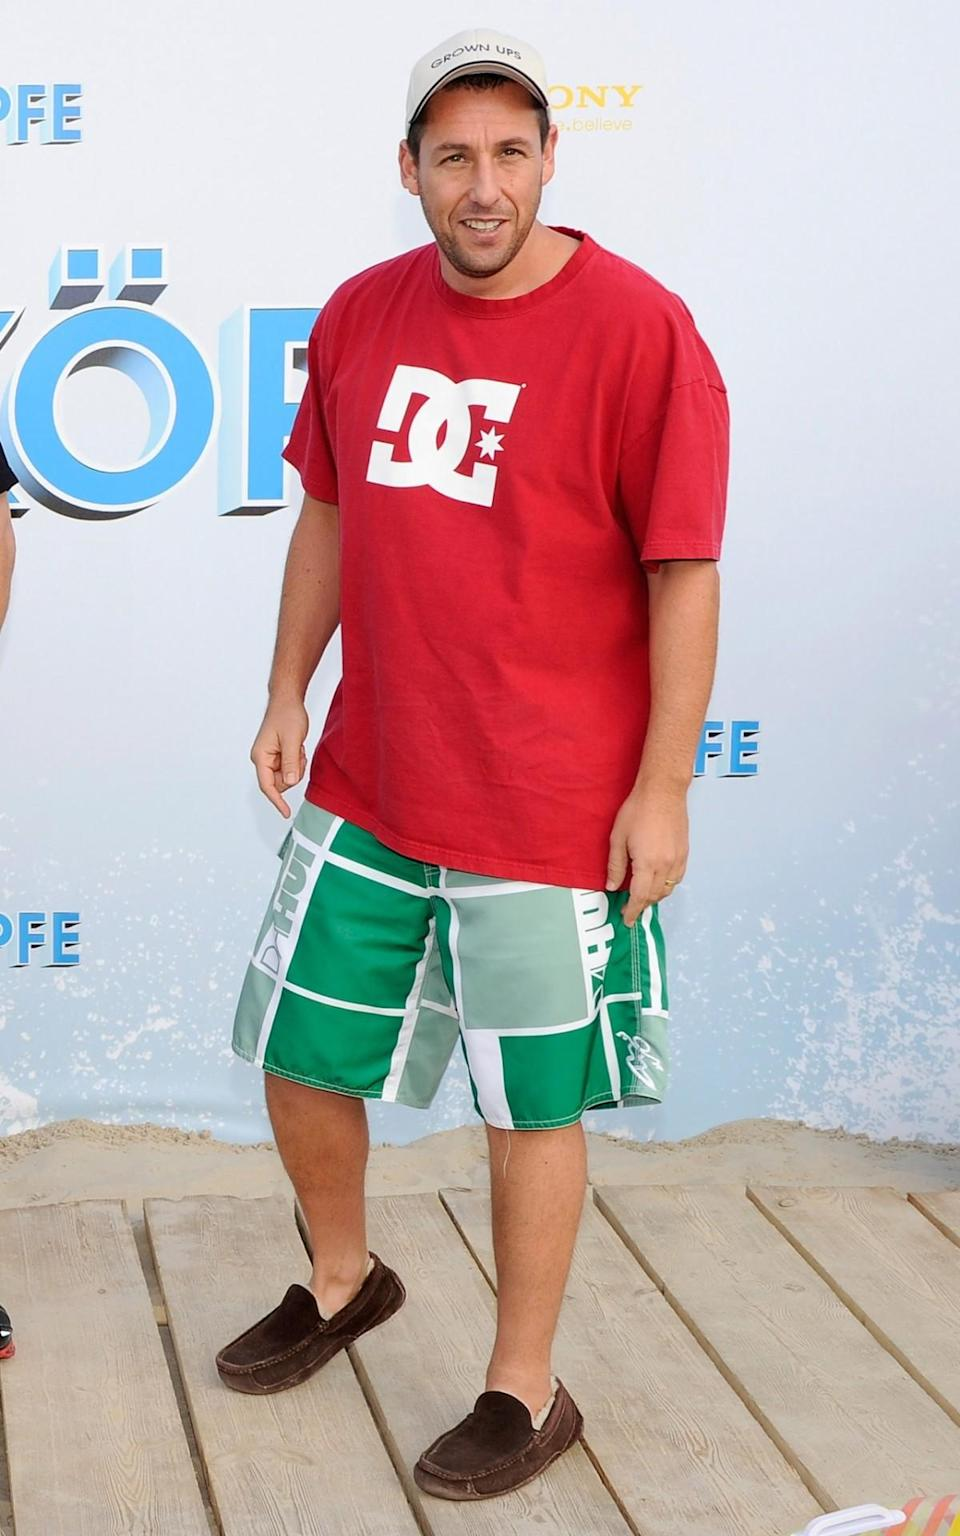 <p>Sandler broke out the board shorts (and slippers) to spread the word about <i>Grown Ups</i> in Berlin. (Photo: Toni Passig/WireImage)</p>